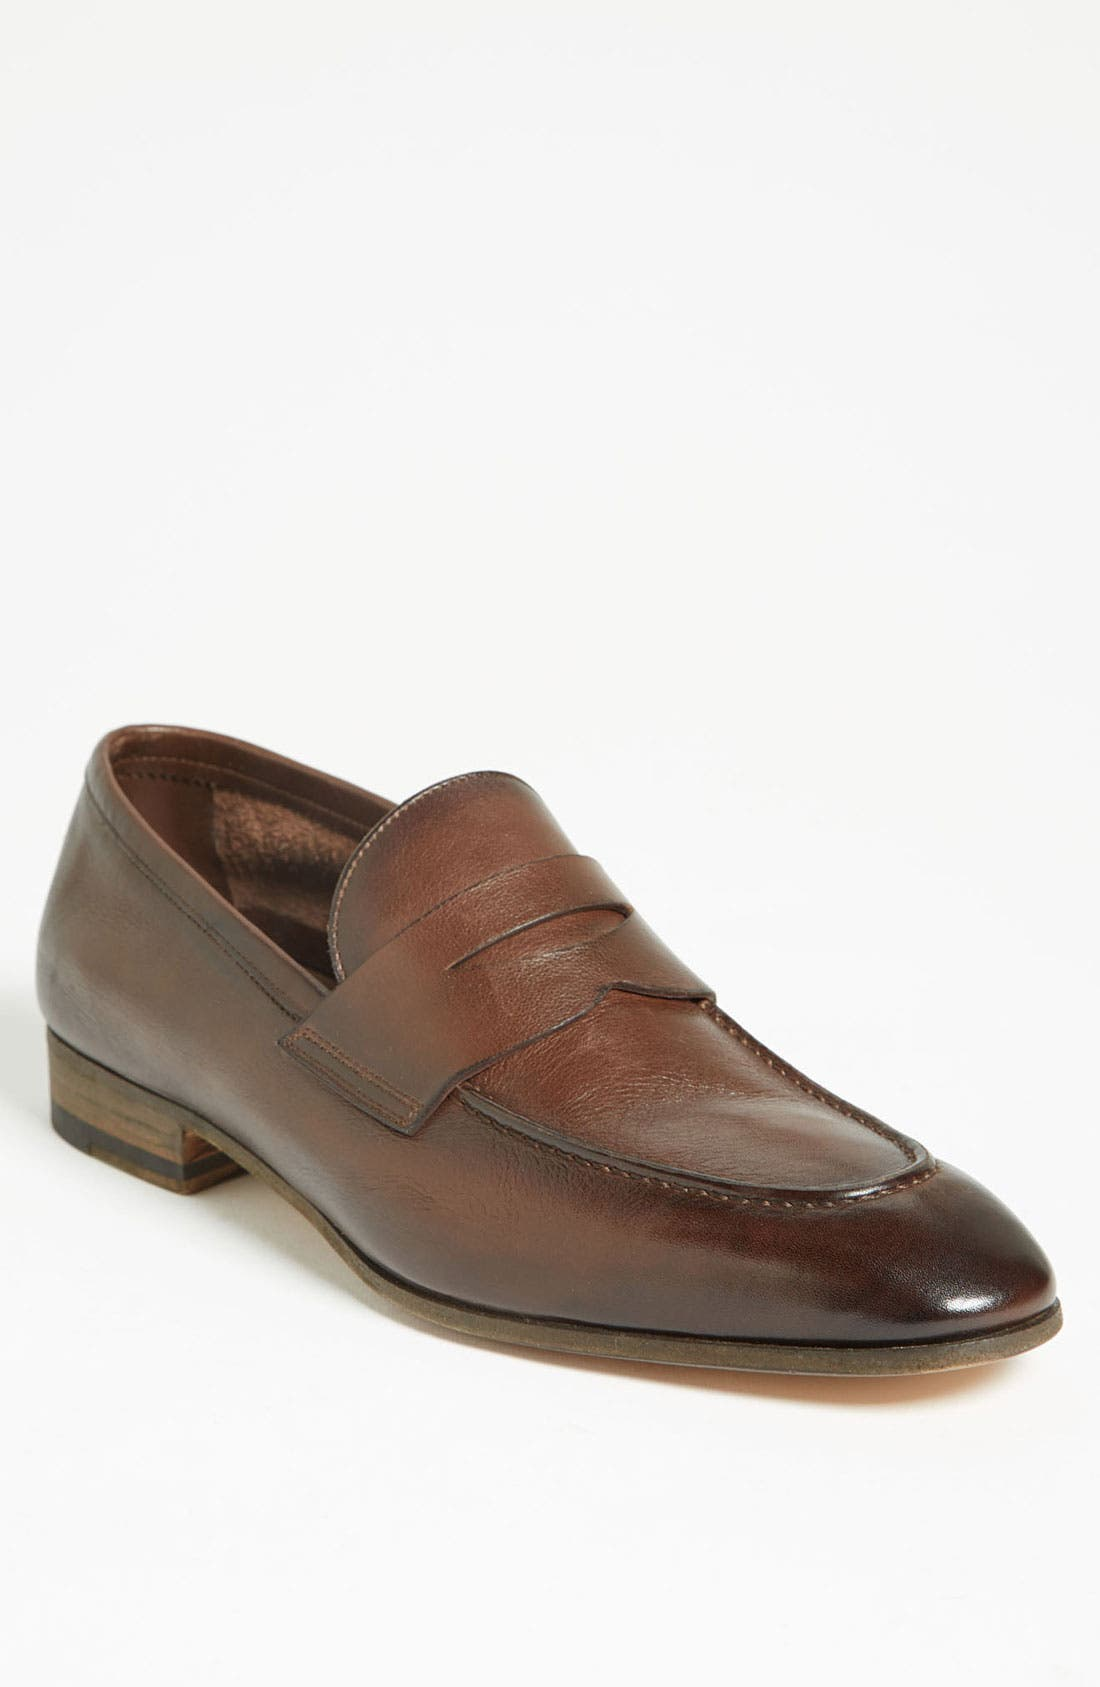 Alternate Image 1 Selected - Santoni 'Tristan' Penny Loafer (Men)